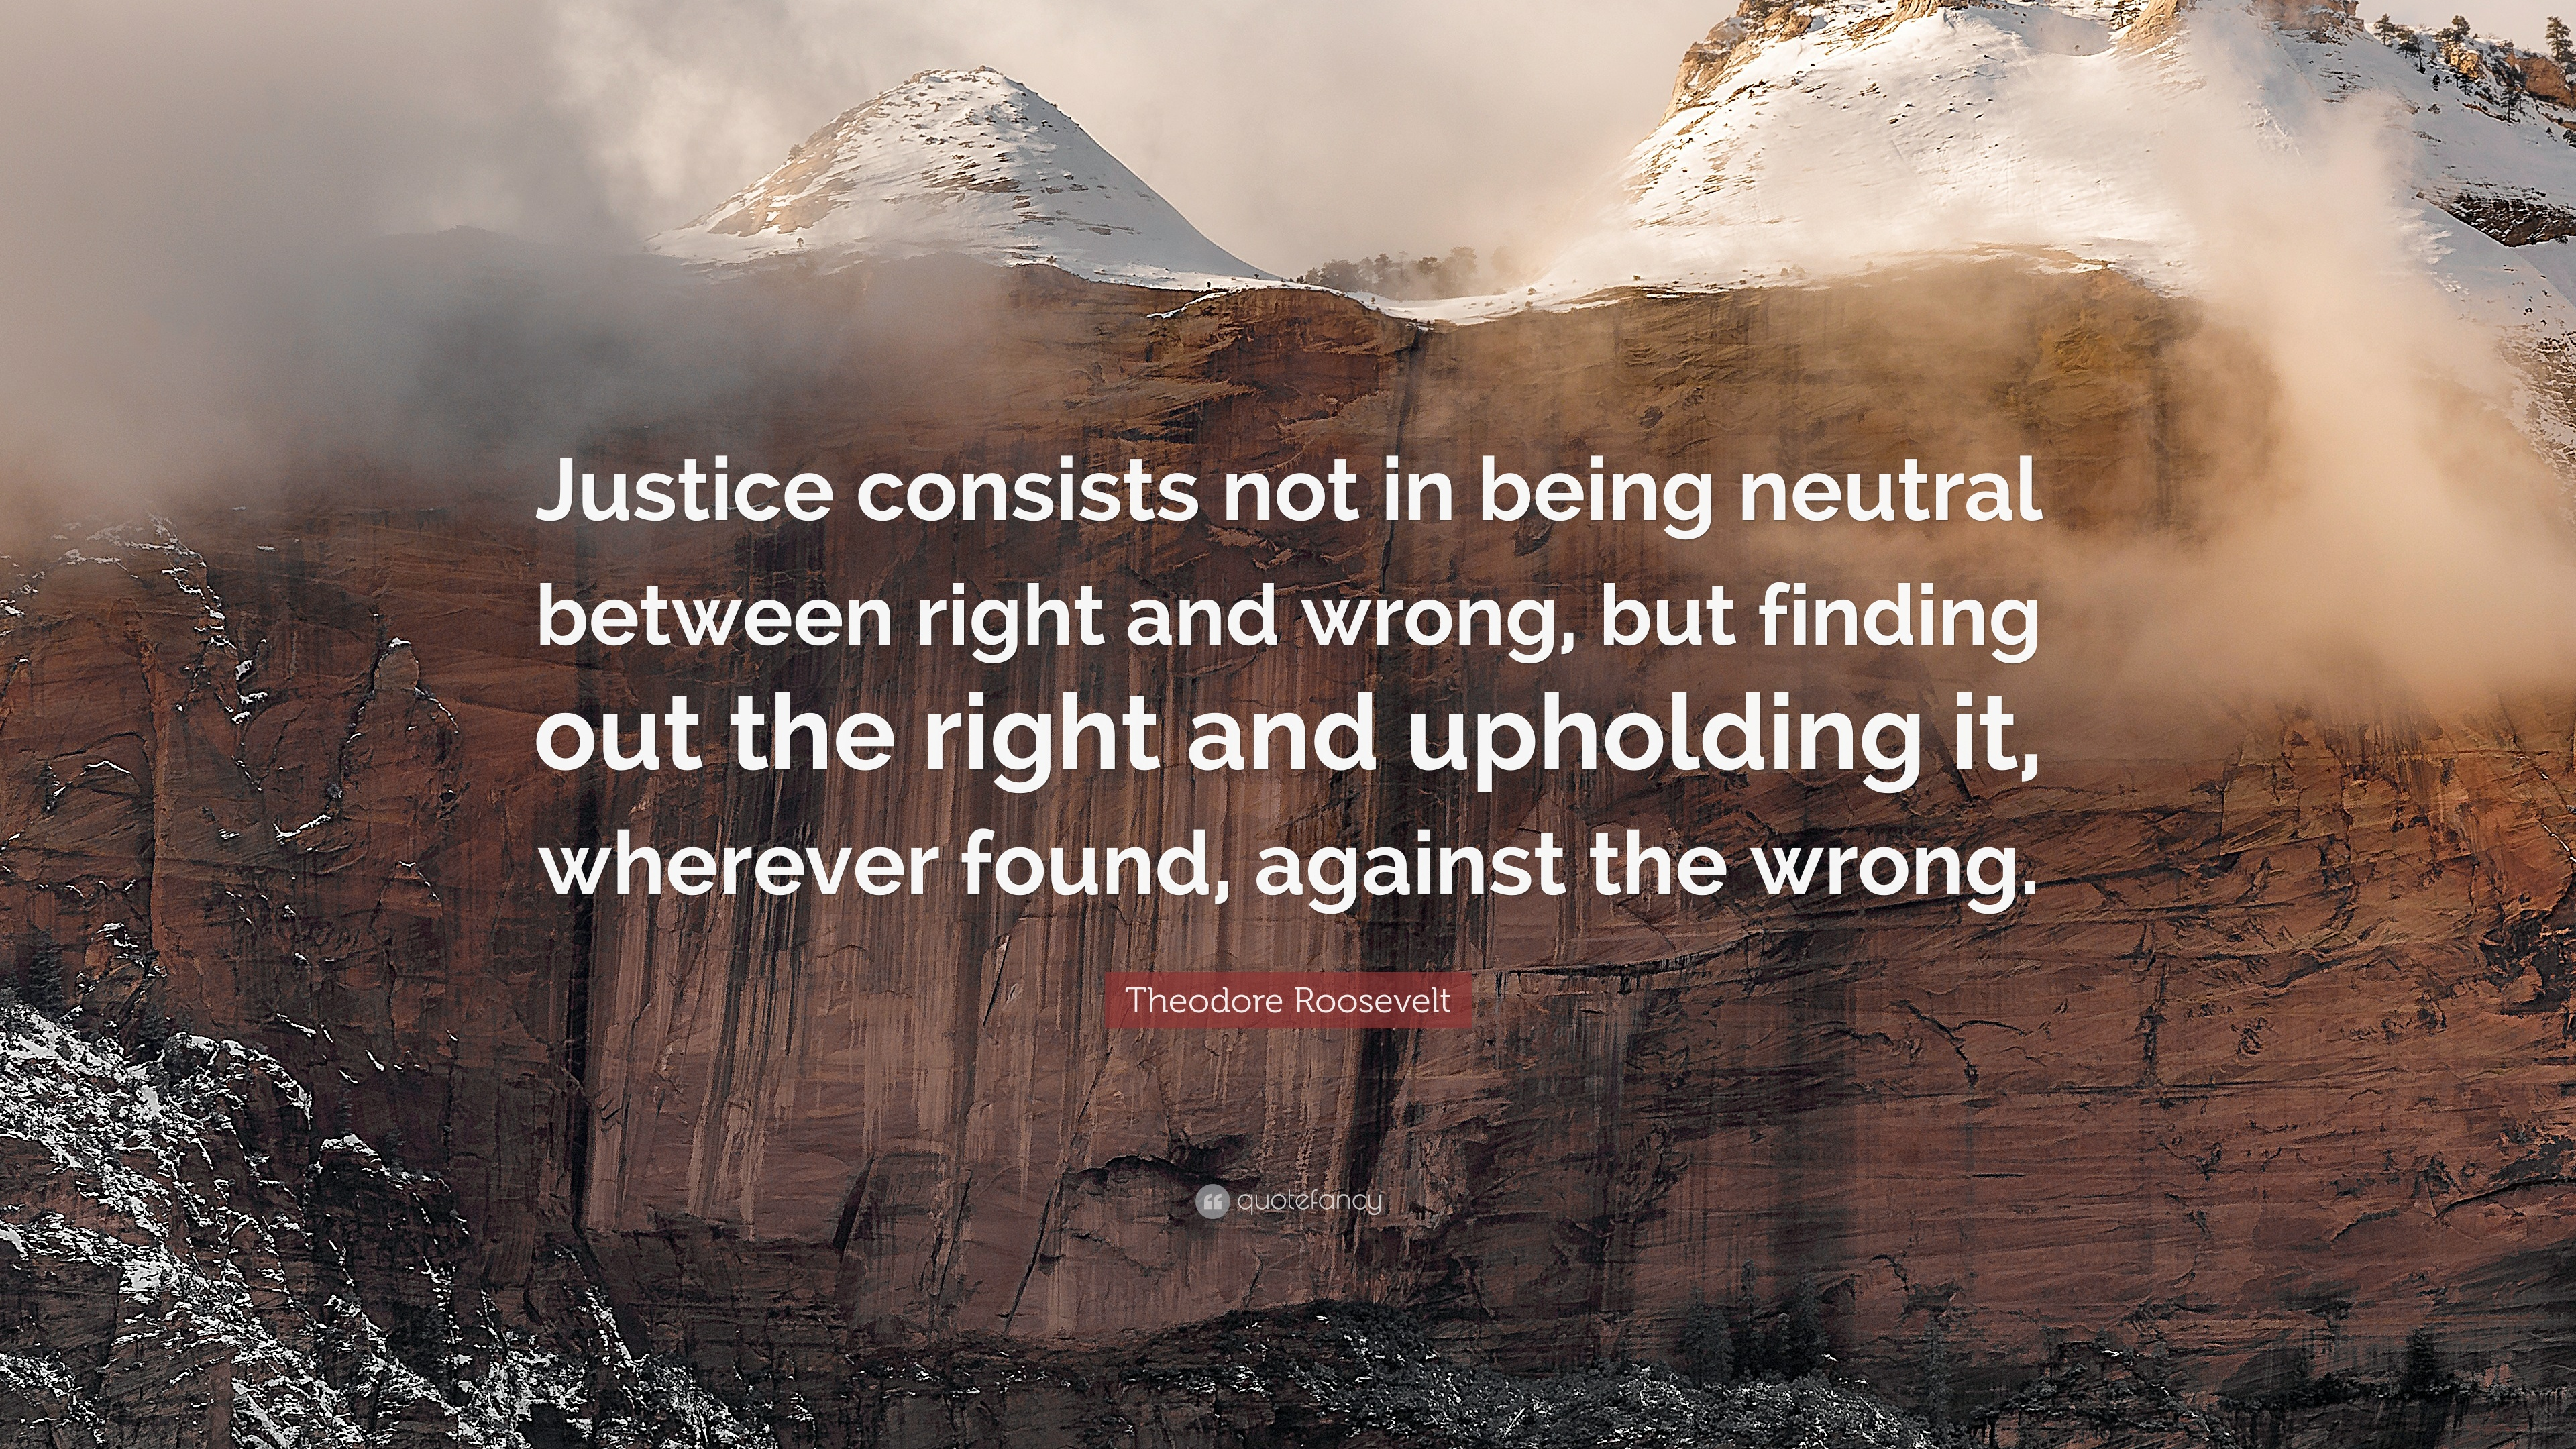 Quotes By Theodore Roosevelt | Theodore Roosevelt Quote Justice Consists Not In Being Neutral